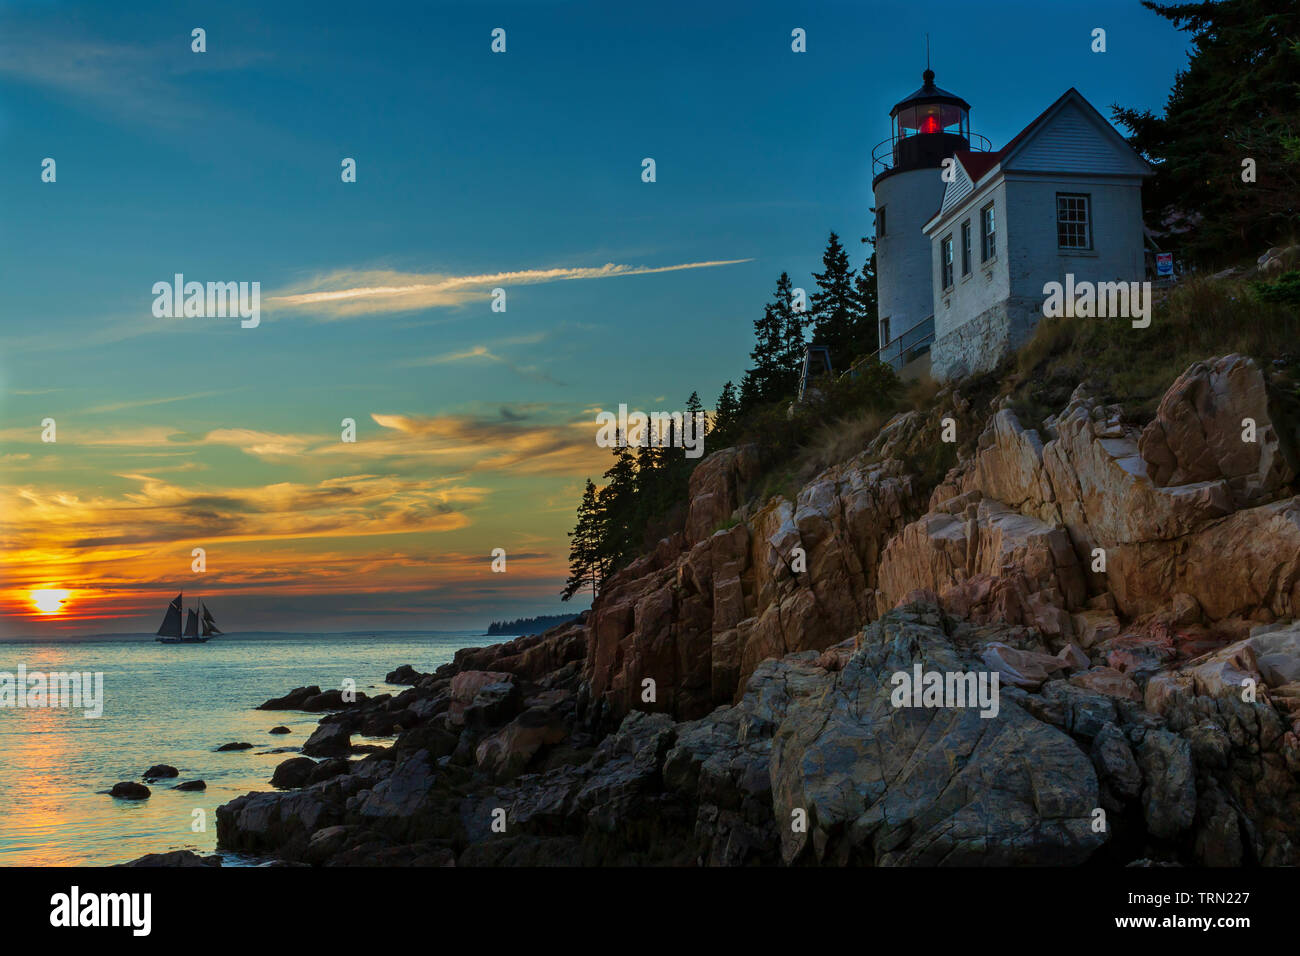 Bass Harbor Head Lighthouse and sail boat at sunset in Acadia National Park, Maine - Stock Image